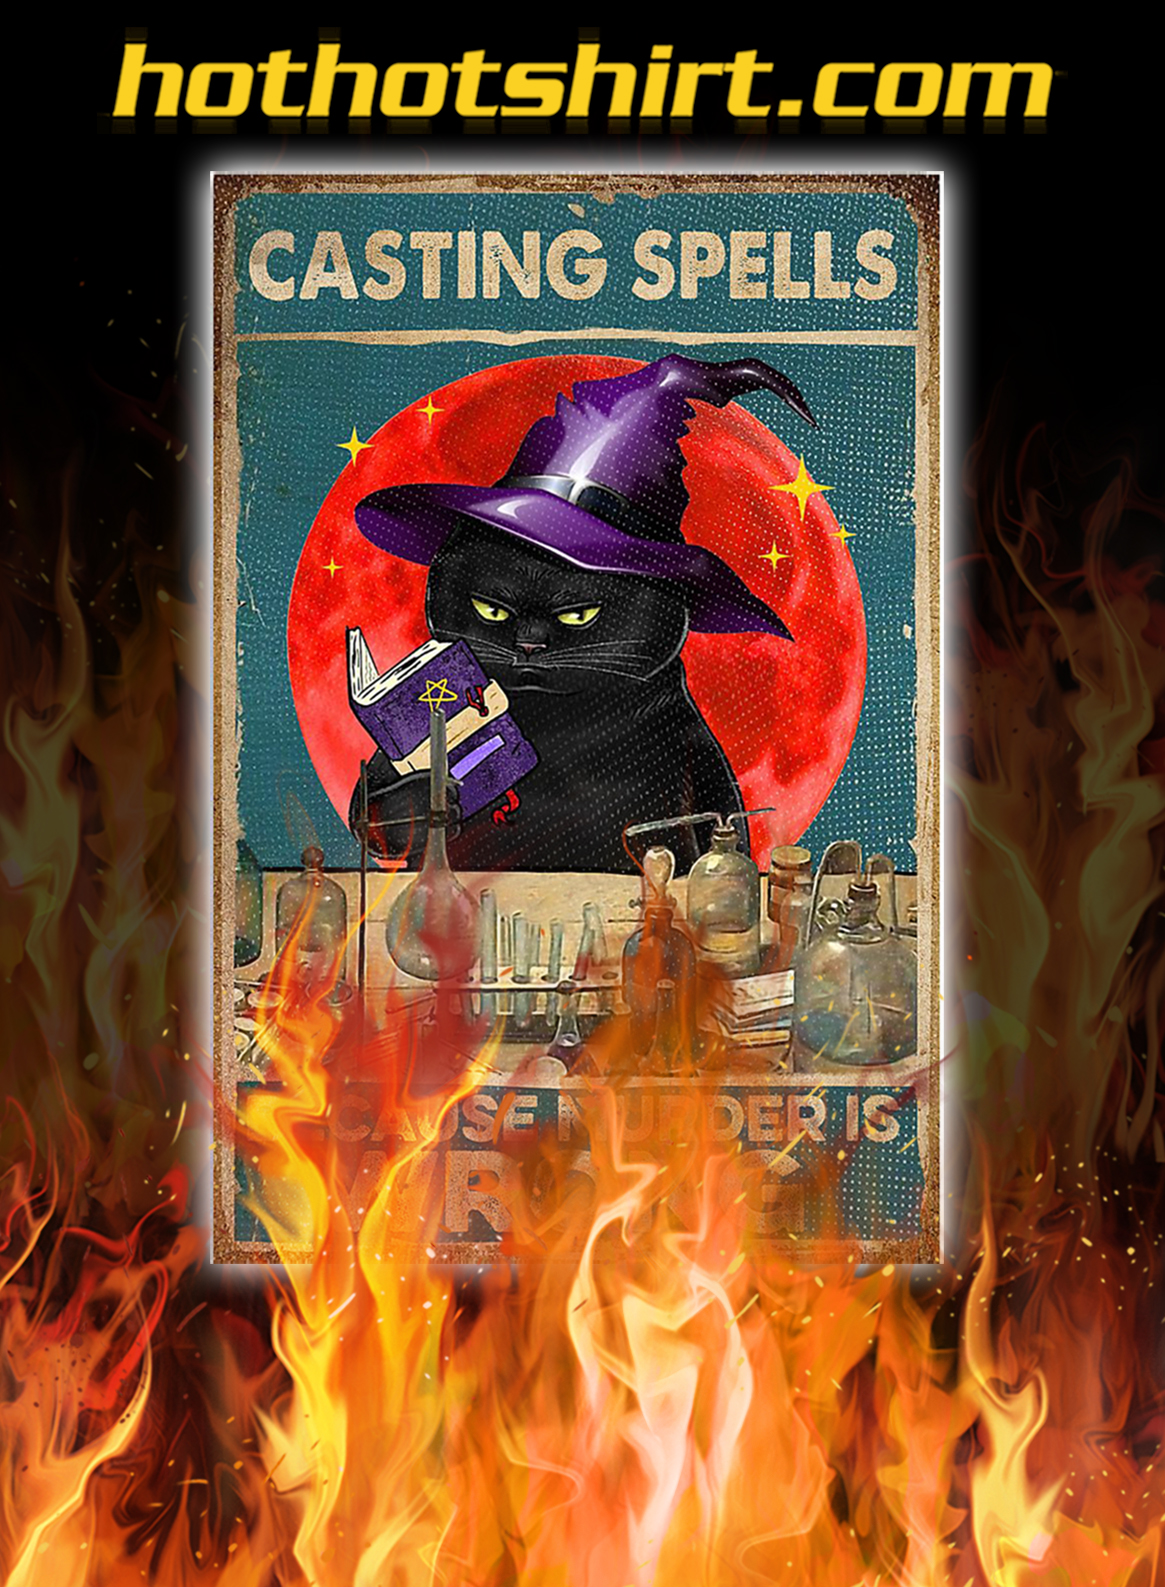 Witch cat casting spells because murder is wrong poster - A1